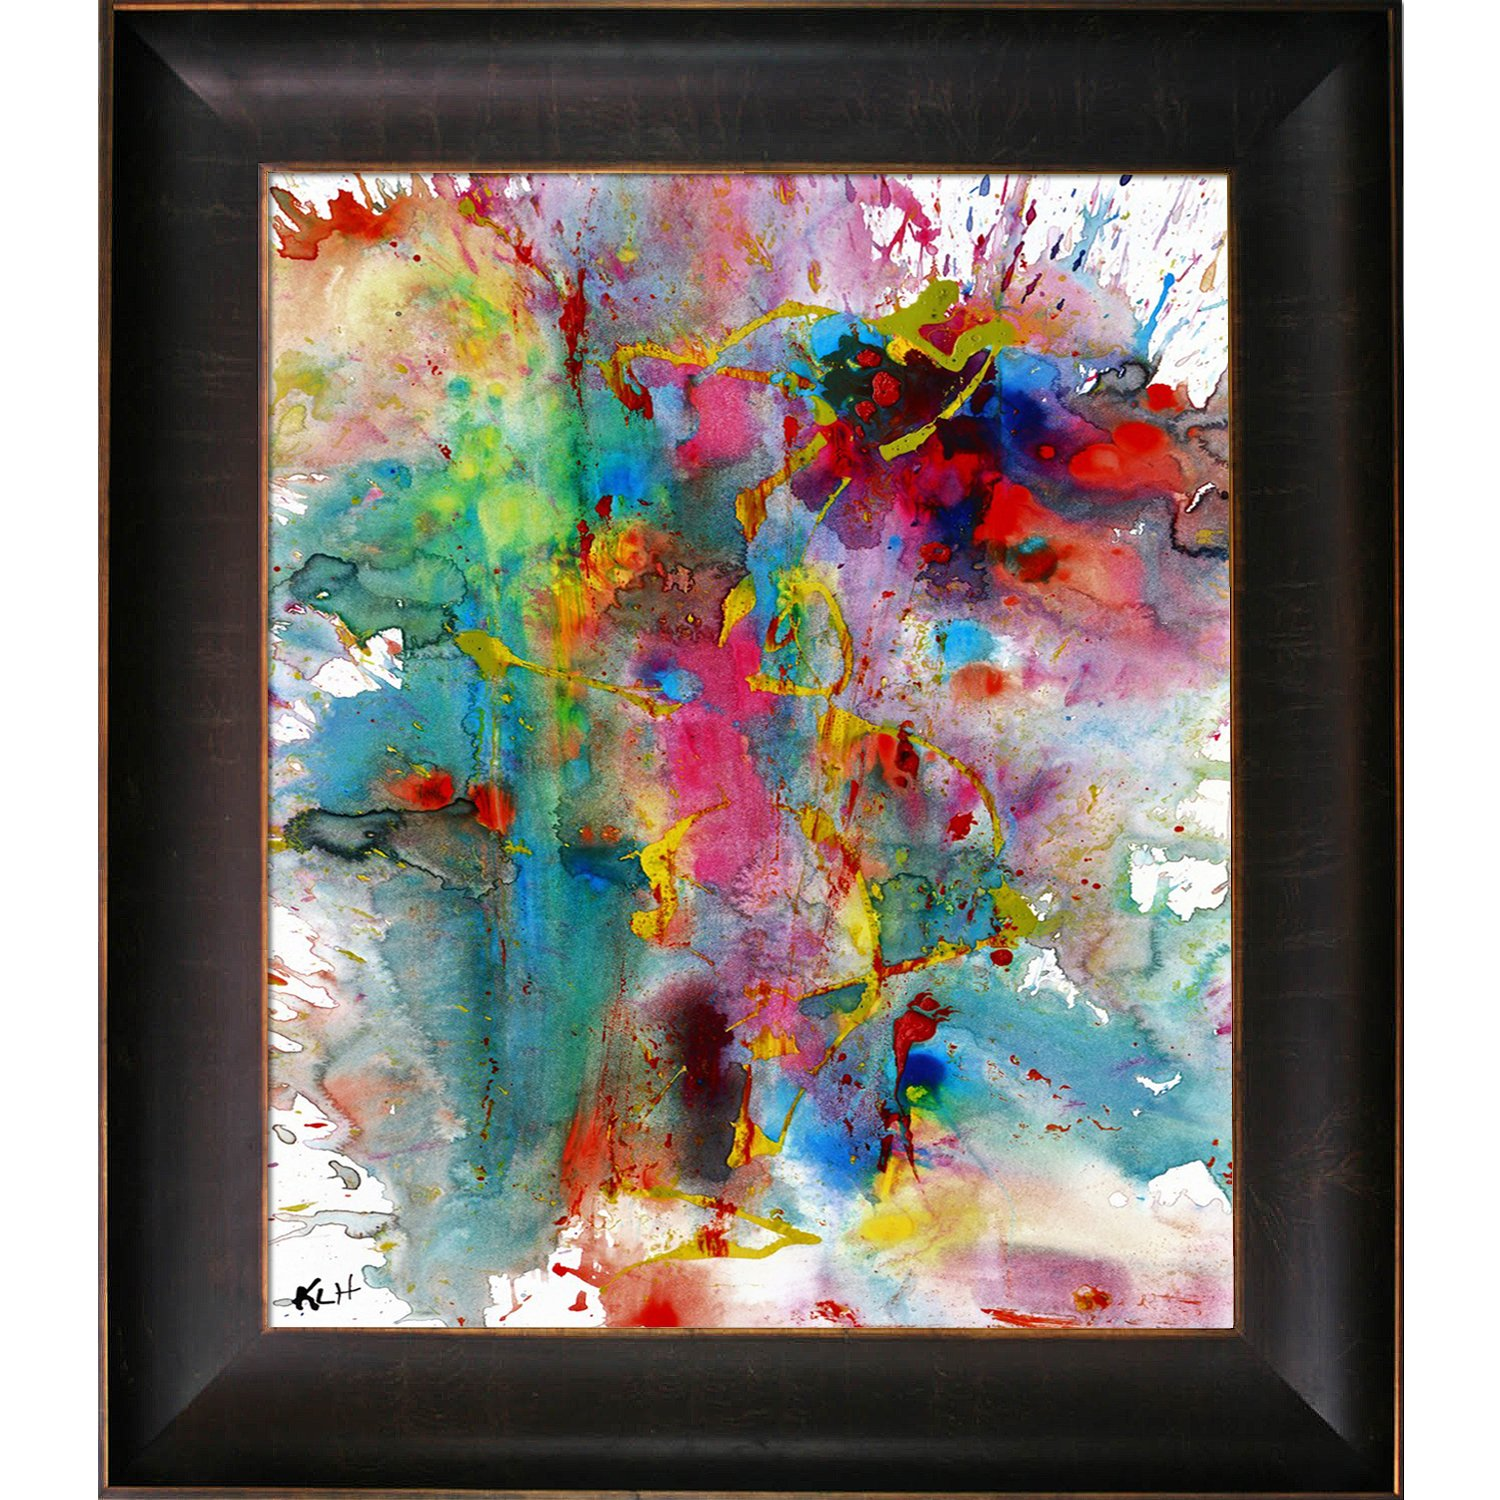 overstockArt Artist Abe Chaotic Craziness Series 1991033014 by Kris Haas Print On Canvas with Veine D Or Bronze Scoop Frame